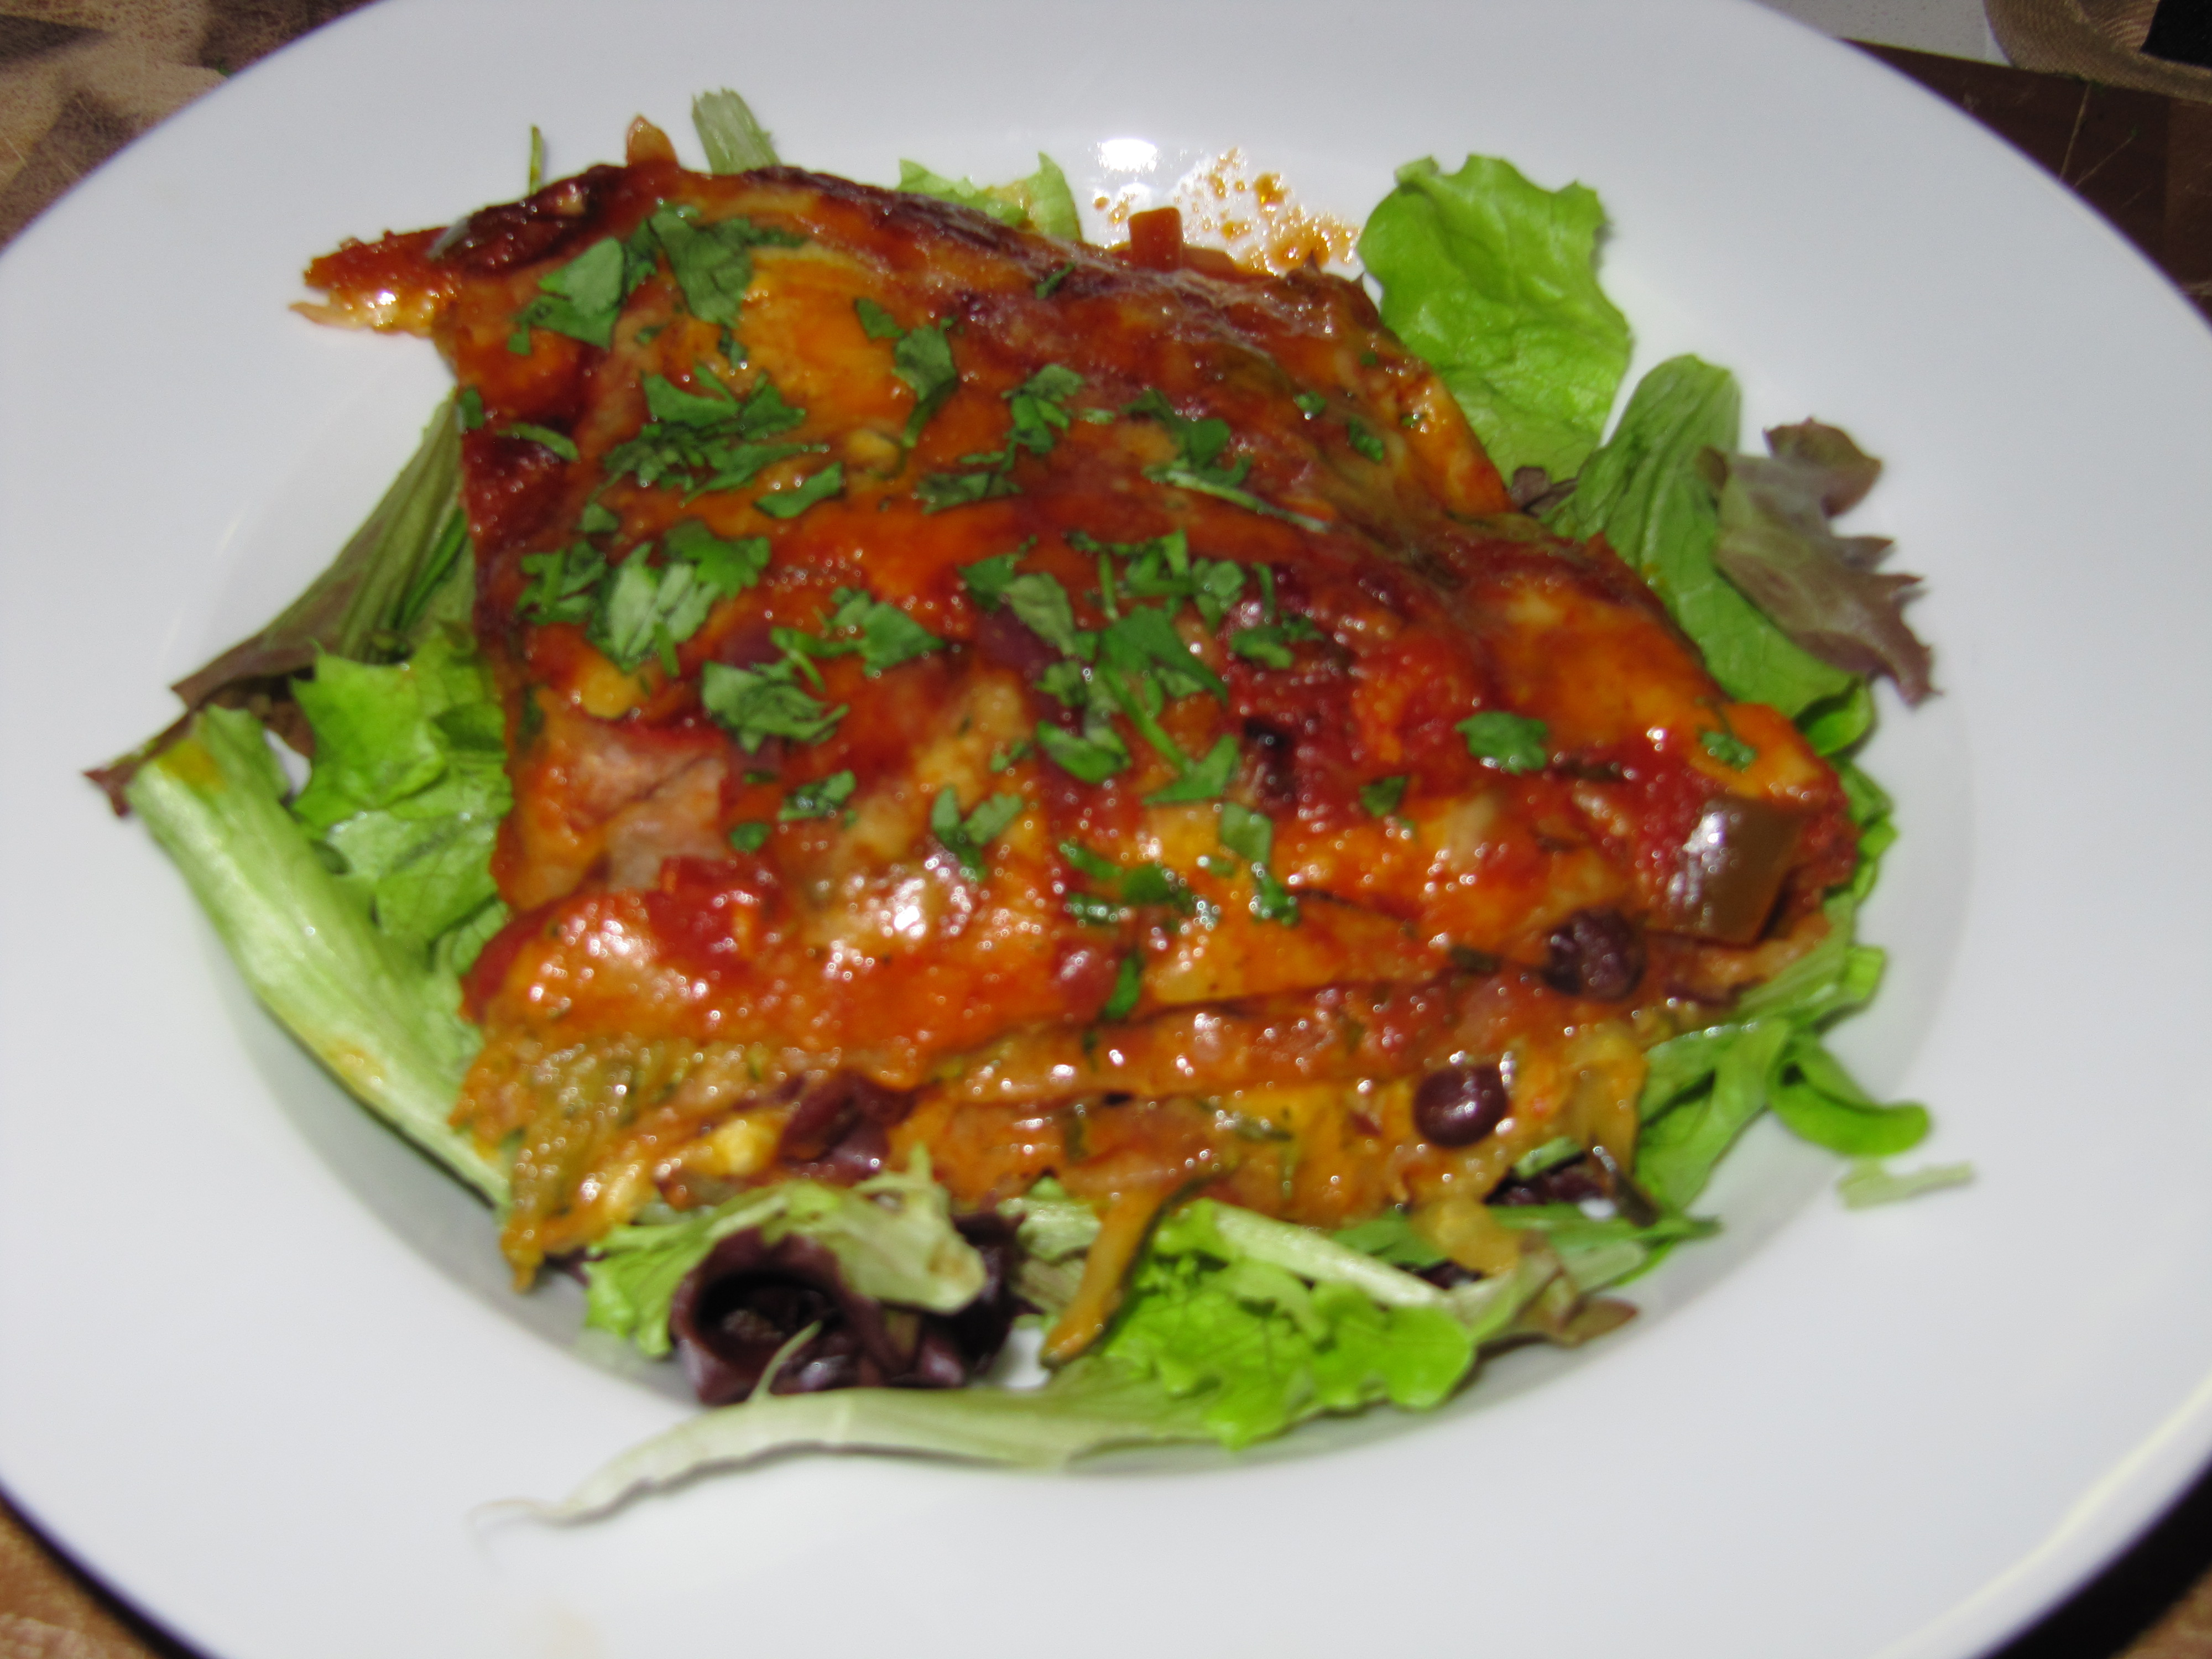 Stacked Black Bean and Zucchini Enchiladas - Eat Better to Live Better